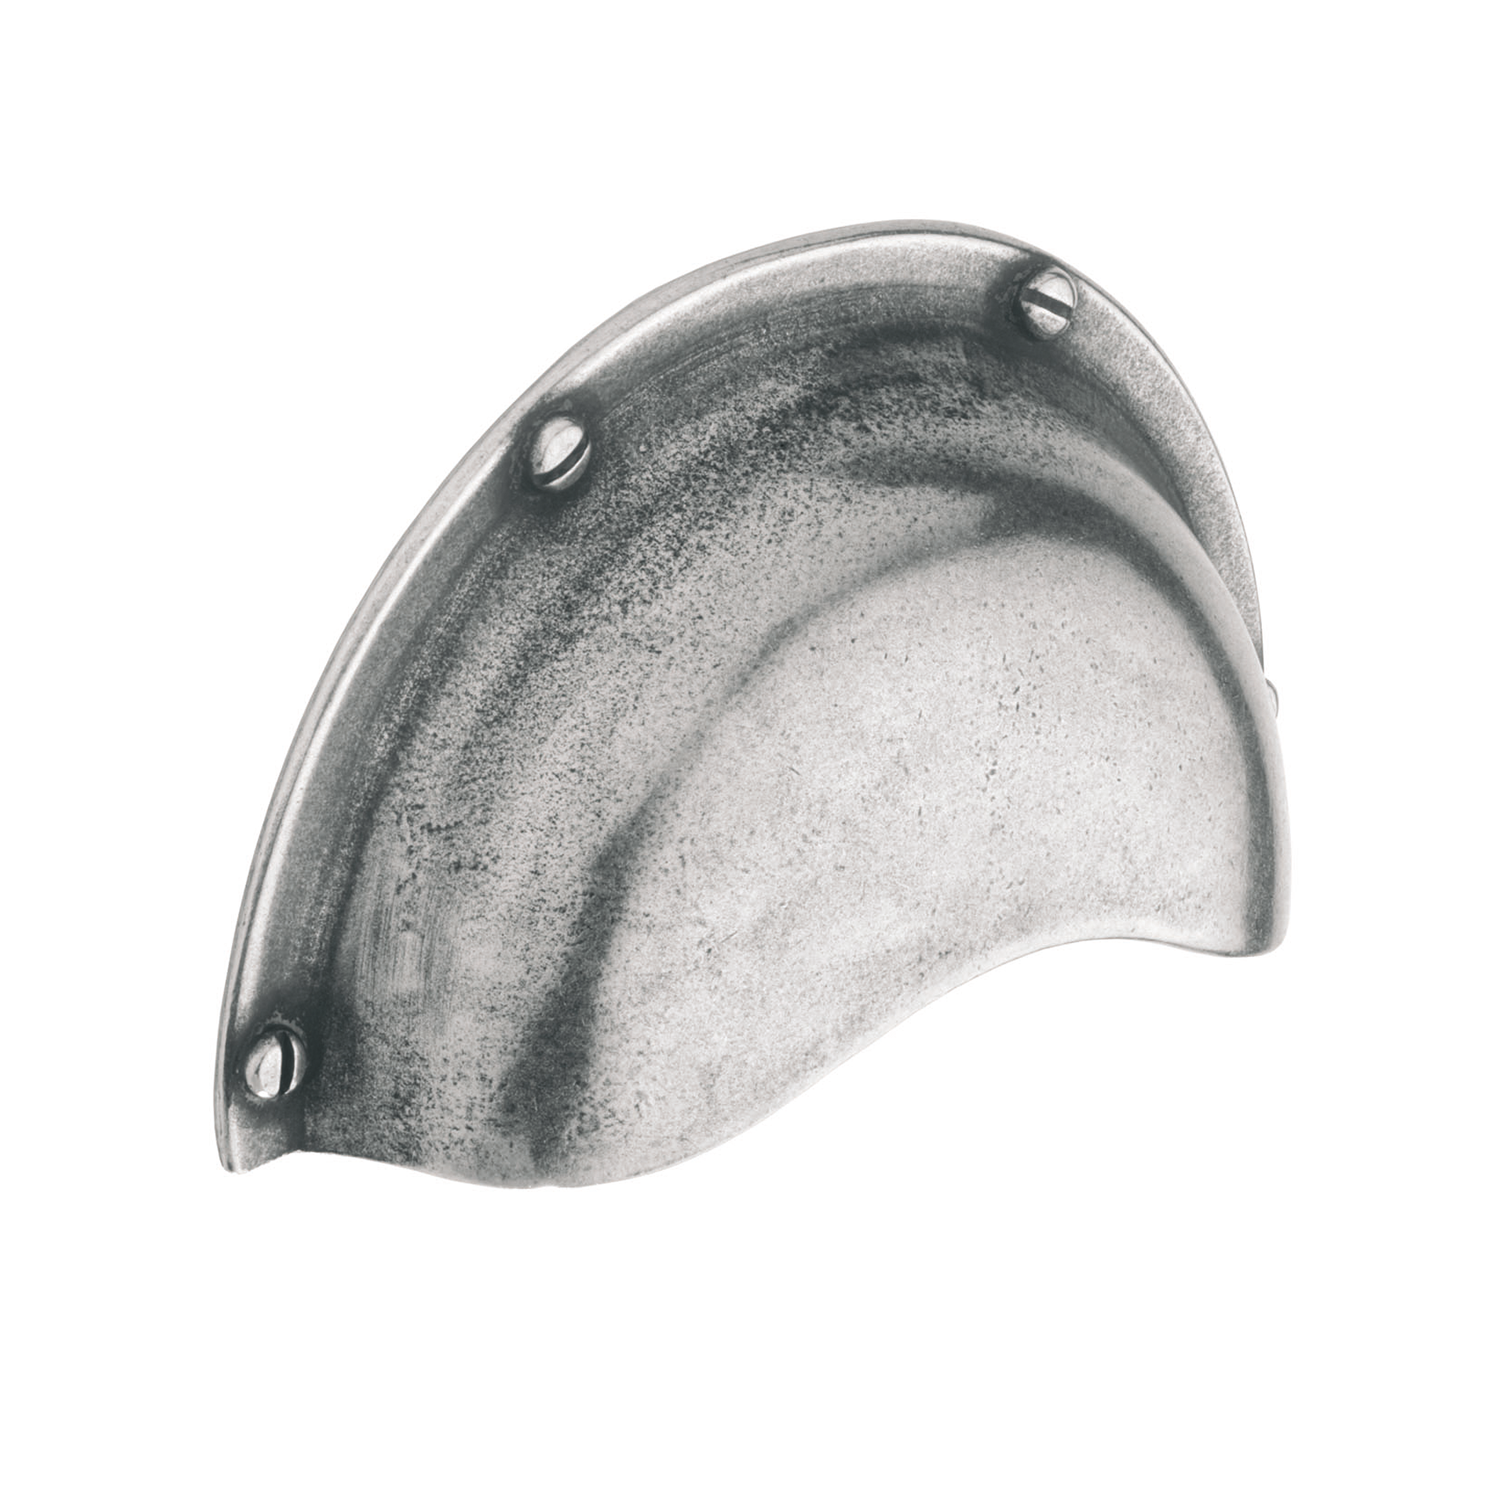 H624.64.PE Cup Handle 64mm C/W Integrated Backplate Pewter